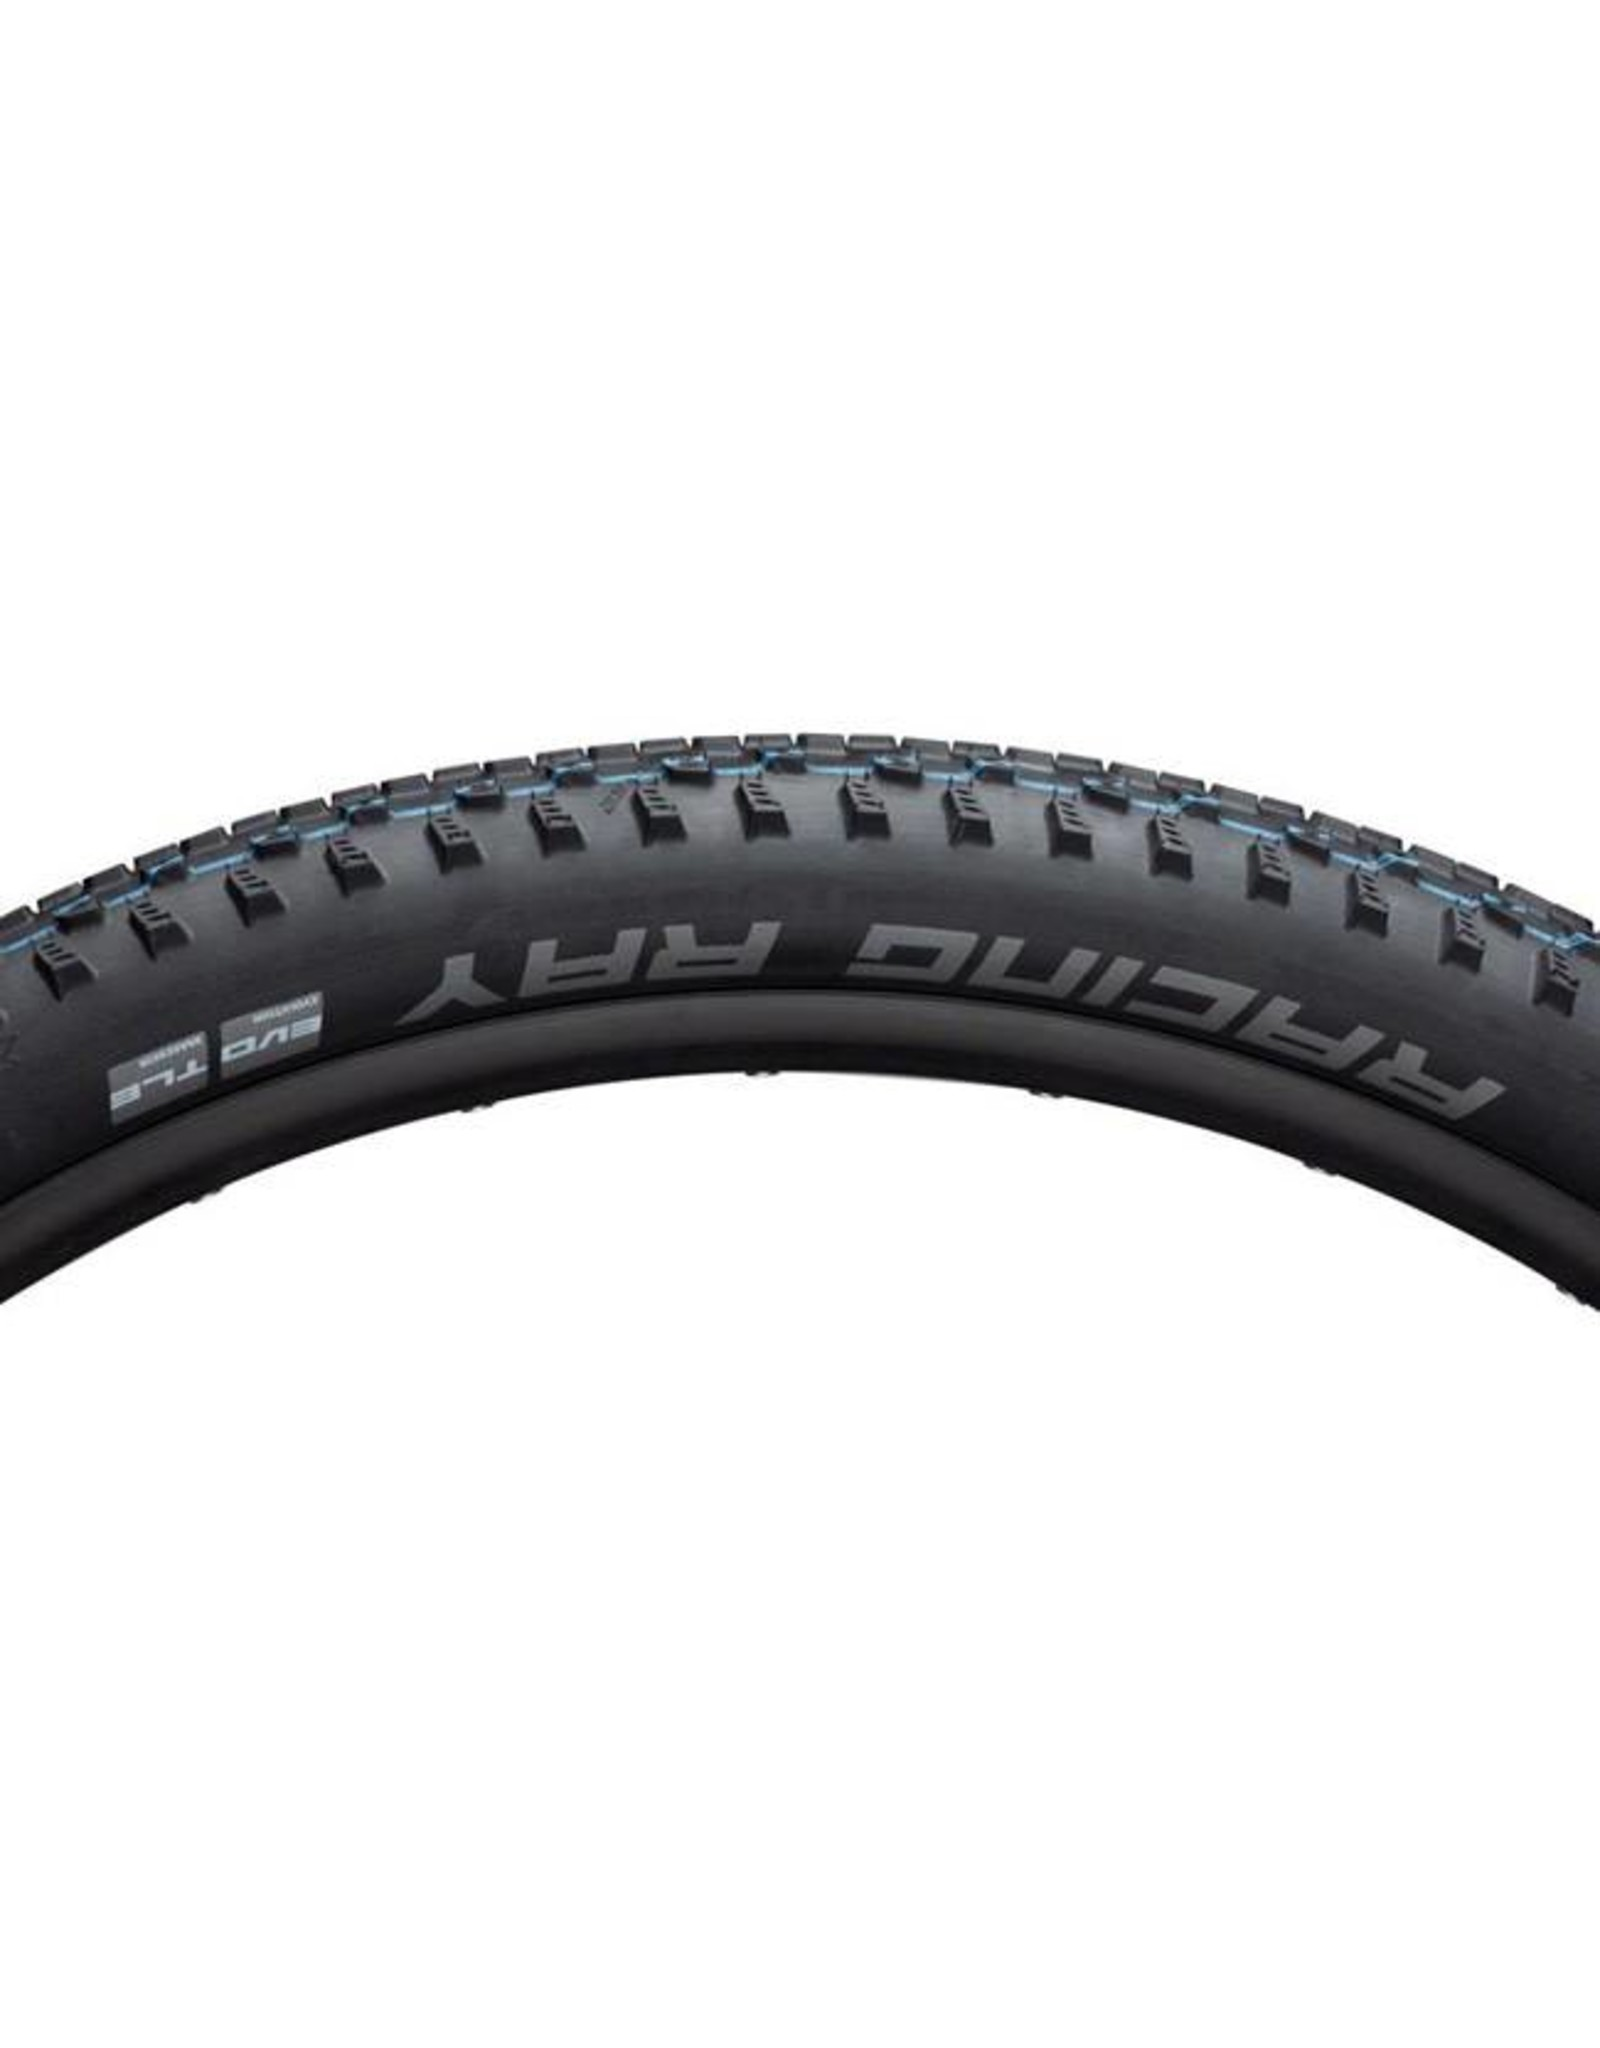 "Schwalbe Schwalbe Racing Ray Tire: 27.5 x 2.25"", Folding Bead, Evolution Line, Addix SpeedGrip Compound, SnakeSkin, Tubeless Easy, Black"